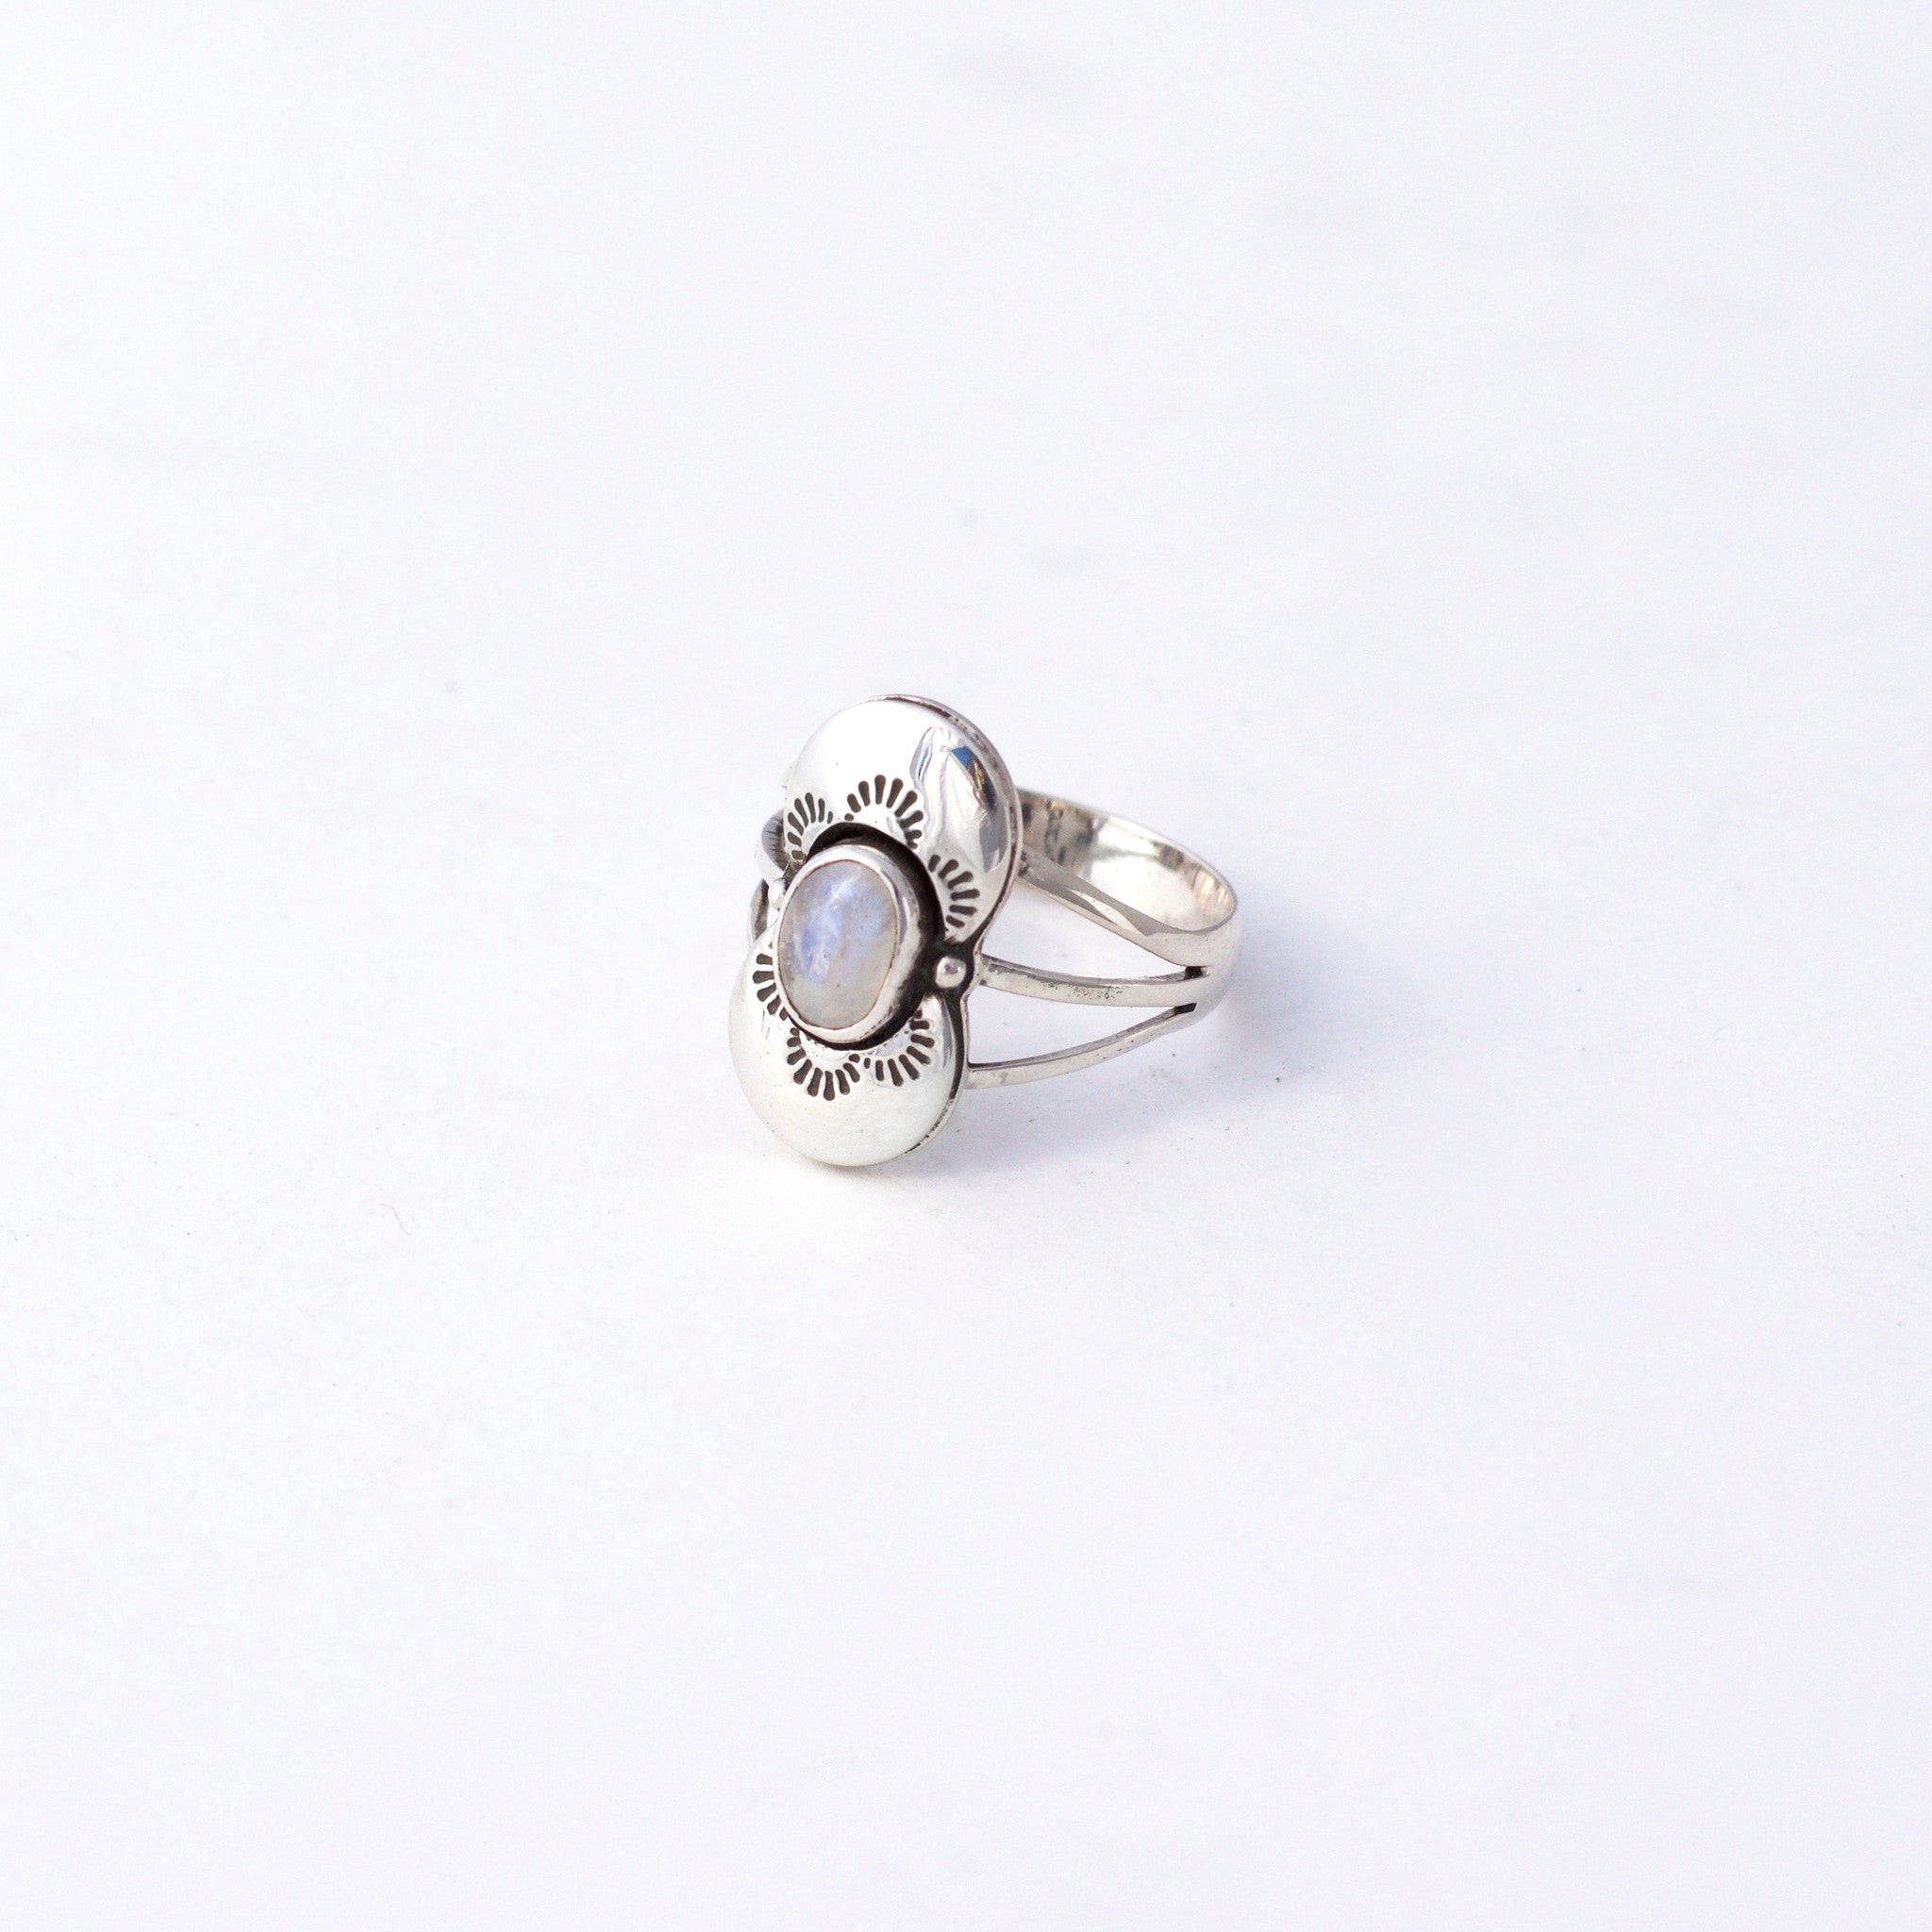 Stamped Moonstone Ring : Size 7.25